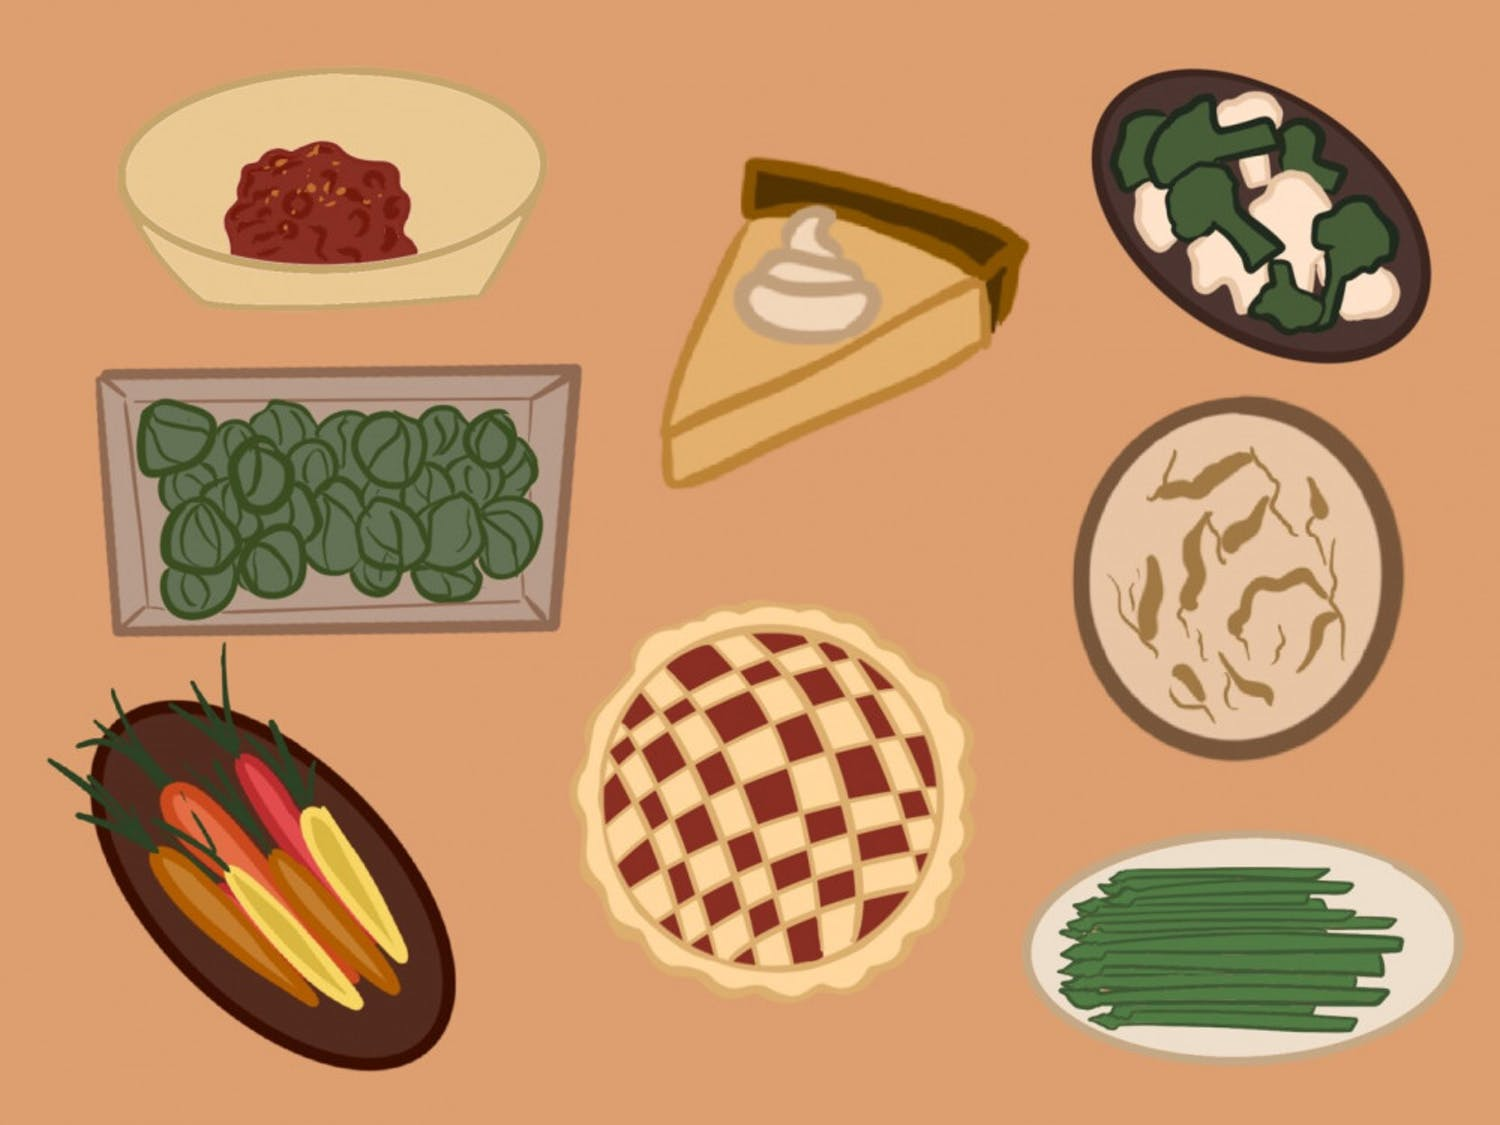 Traditionally a meat- and dairy-heavy holiday dinner, Thanksgiving is handled differently by students with vegan and vegetarian diets.